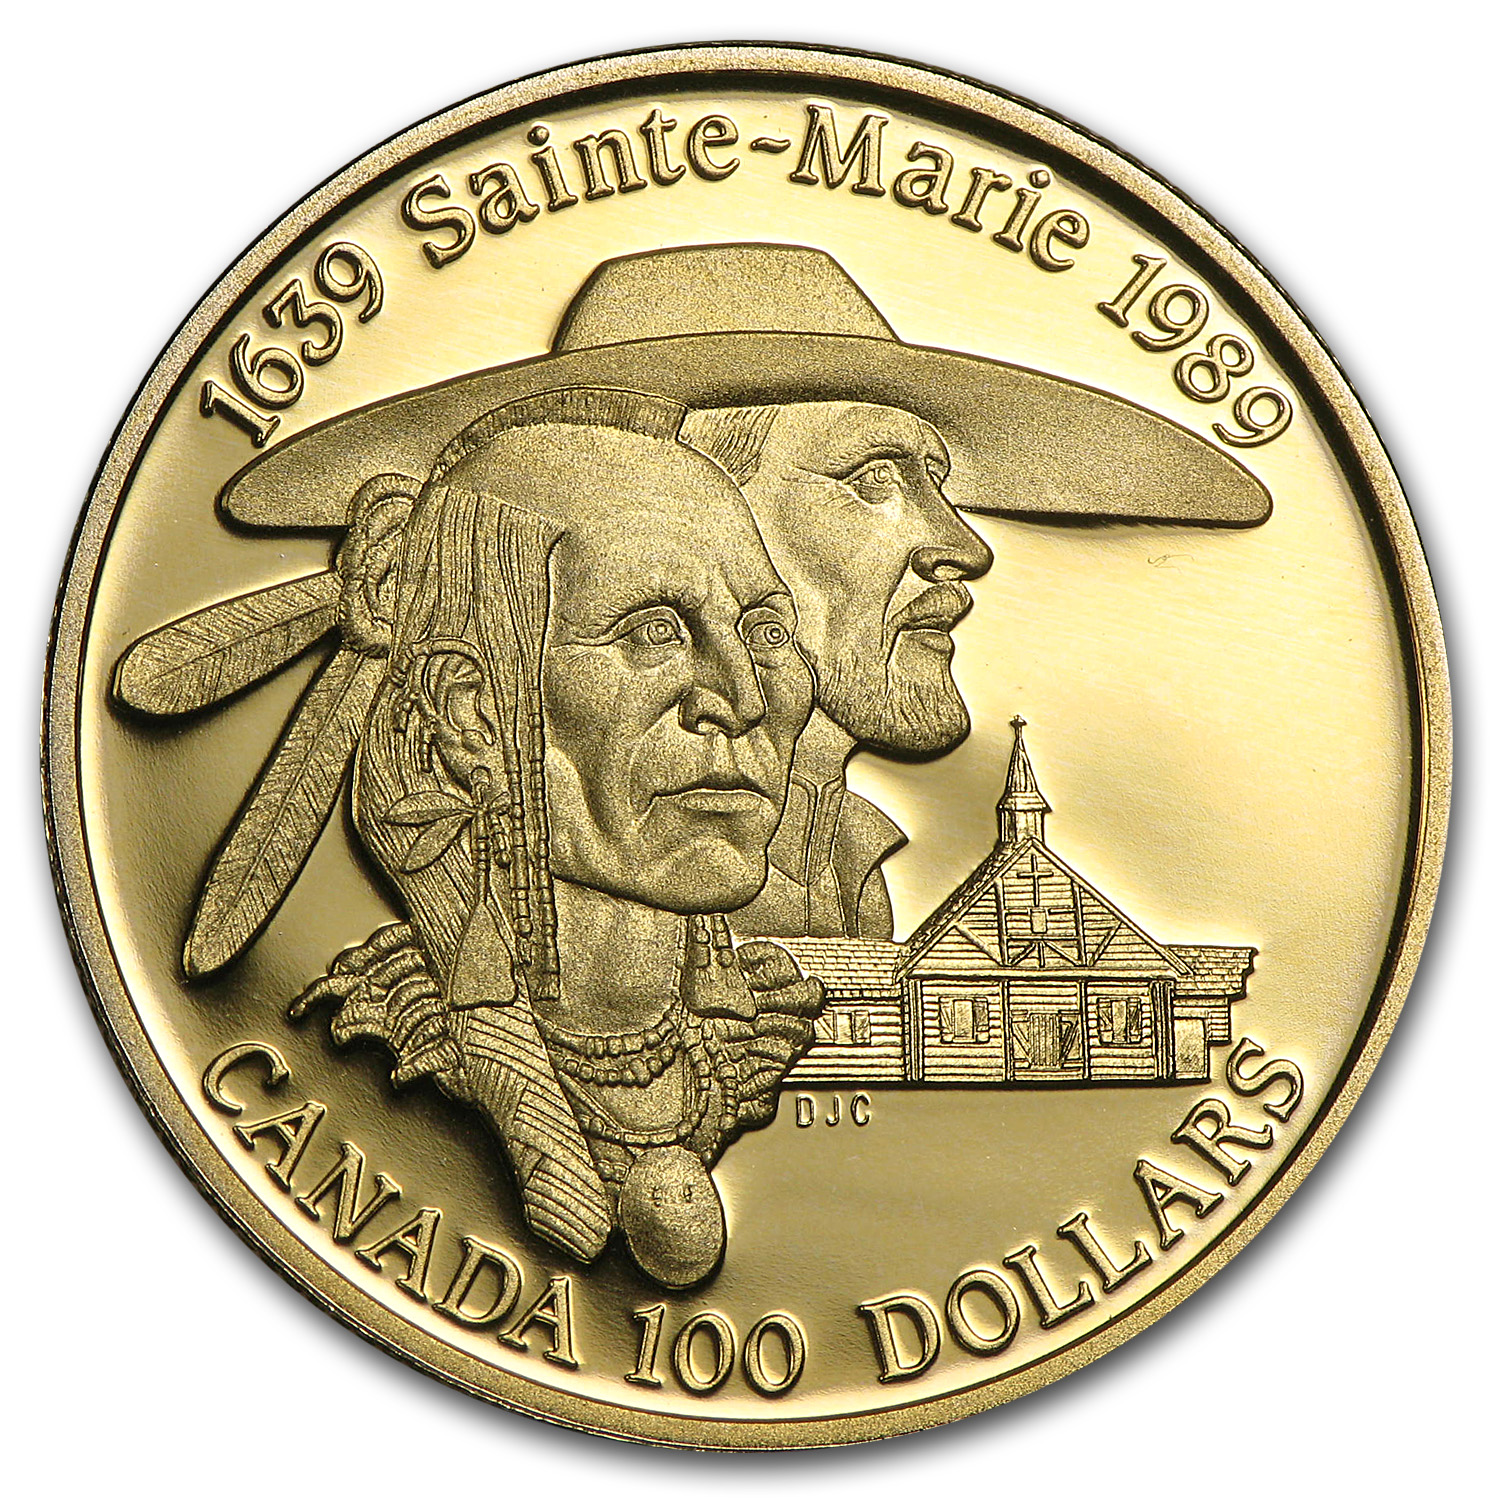 1989 1/4 oz Gold Canadian $100 Proof - Sainte-Marie